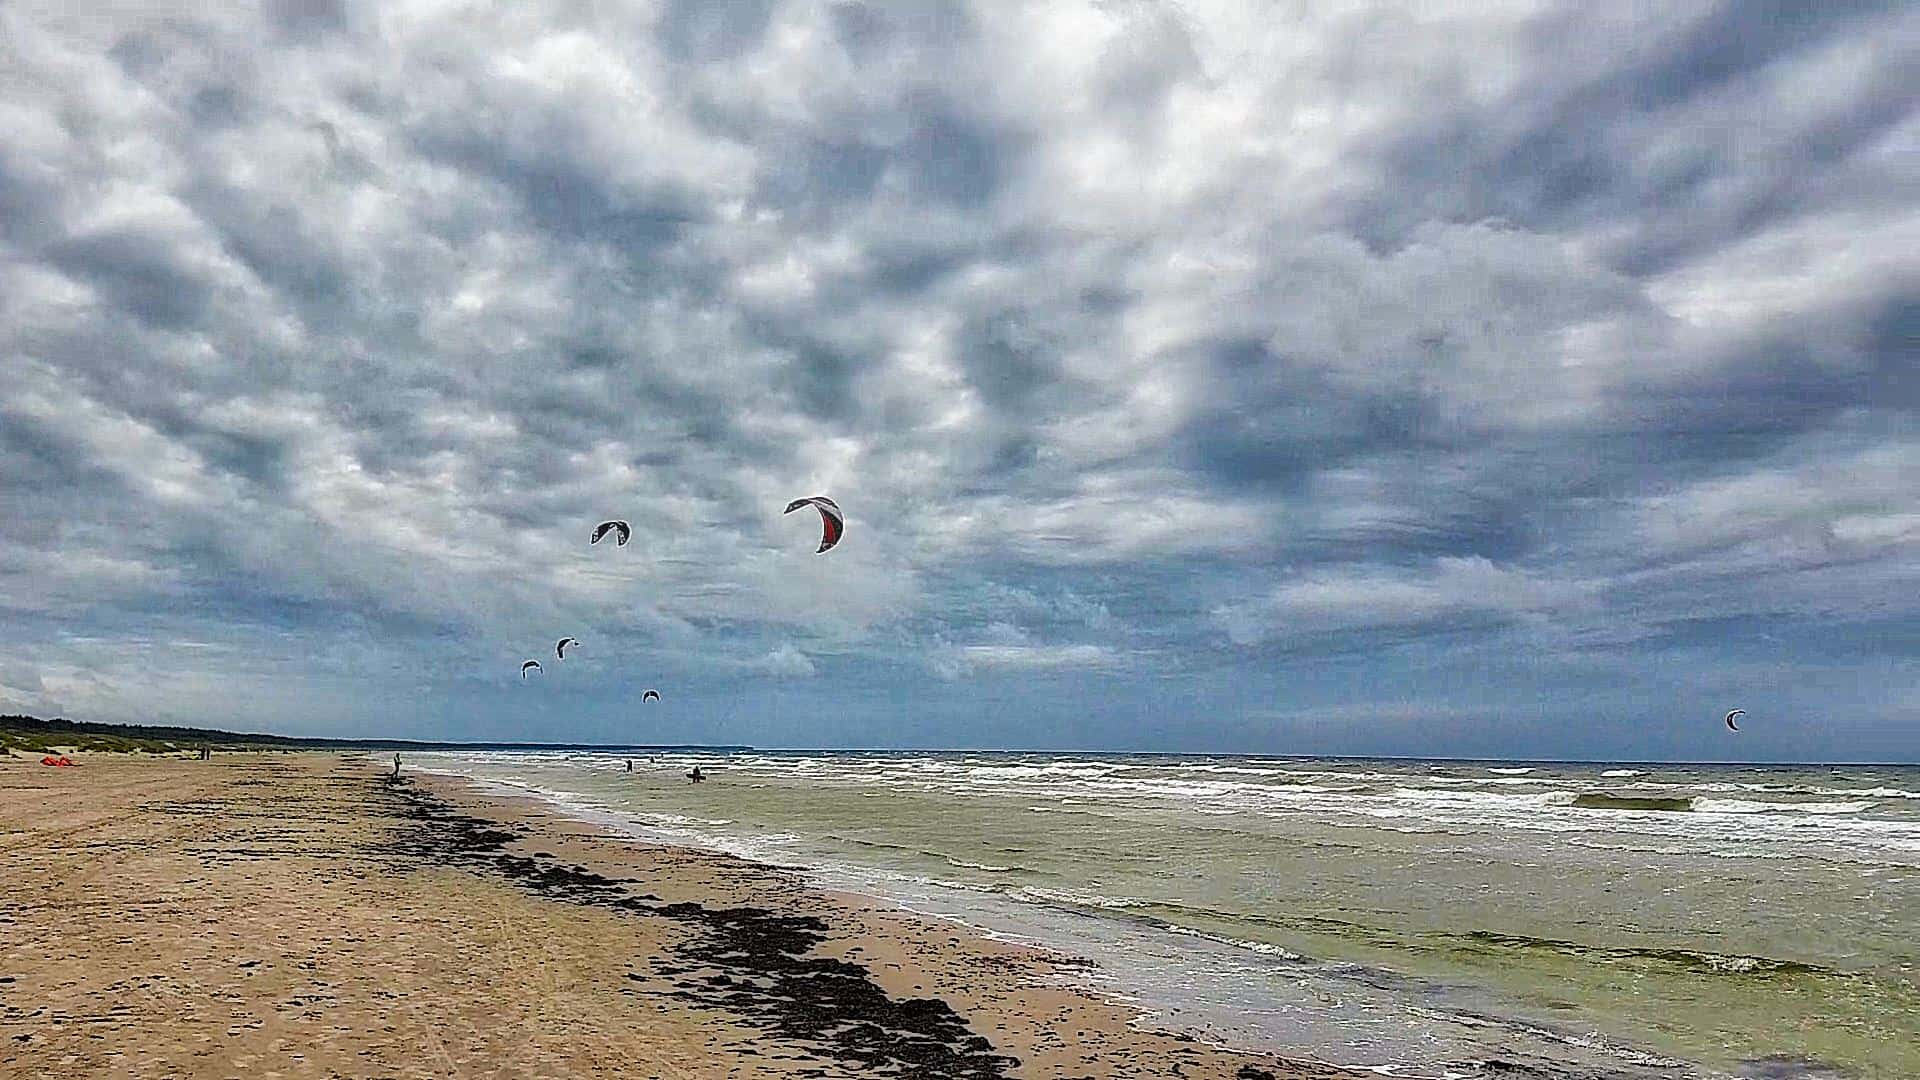 Kitesurfing Liepaja city beach